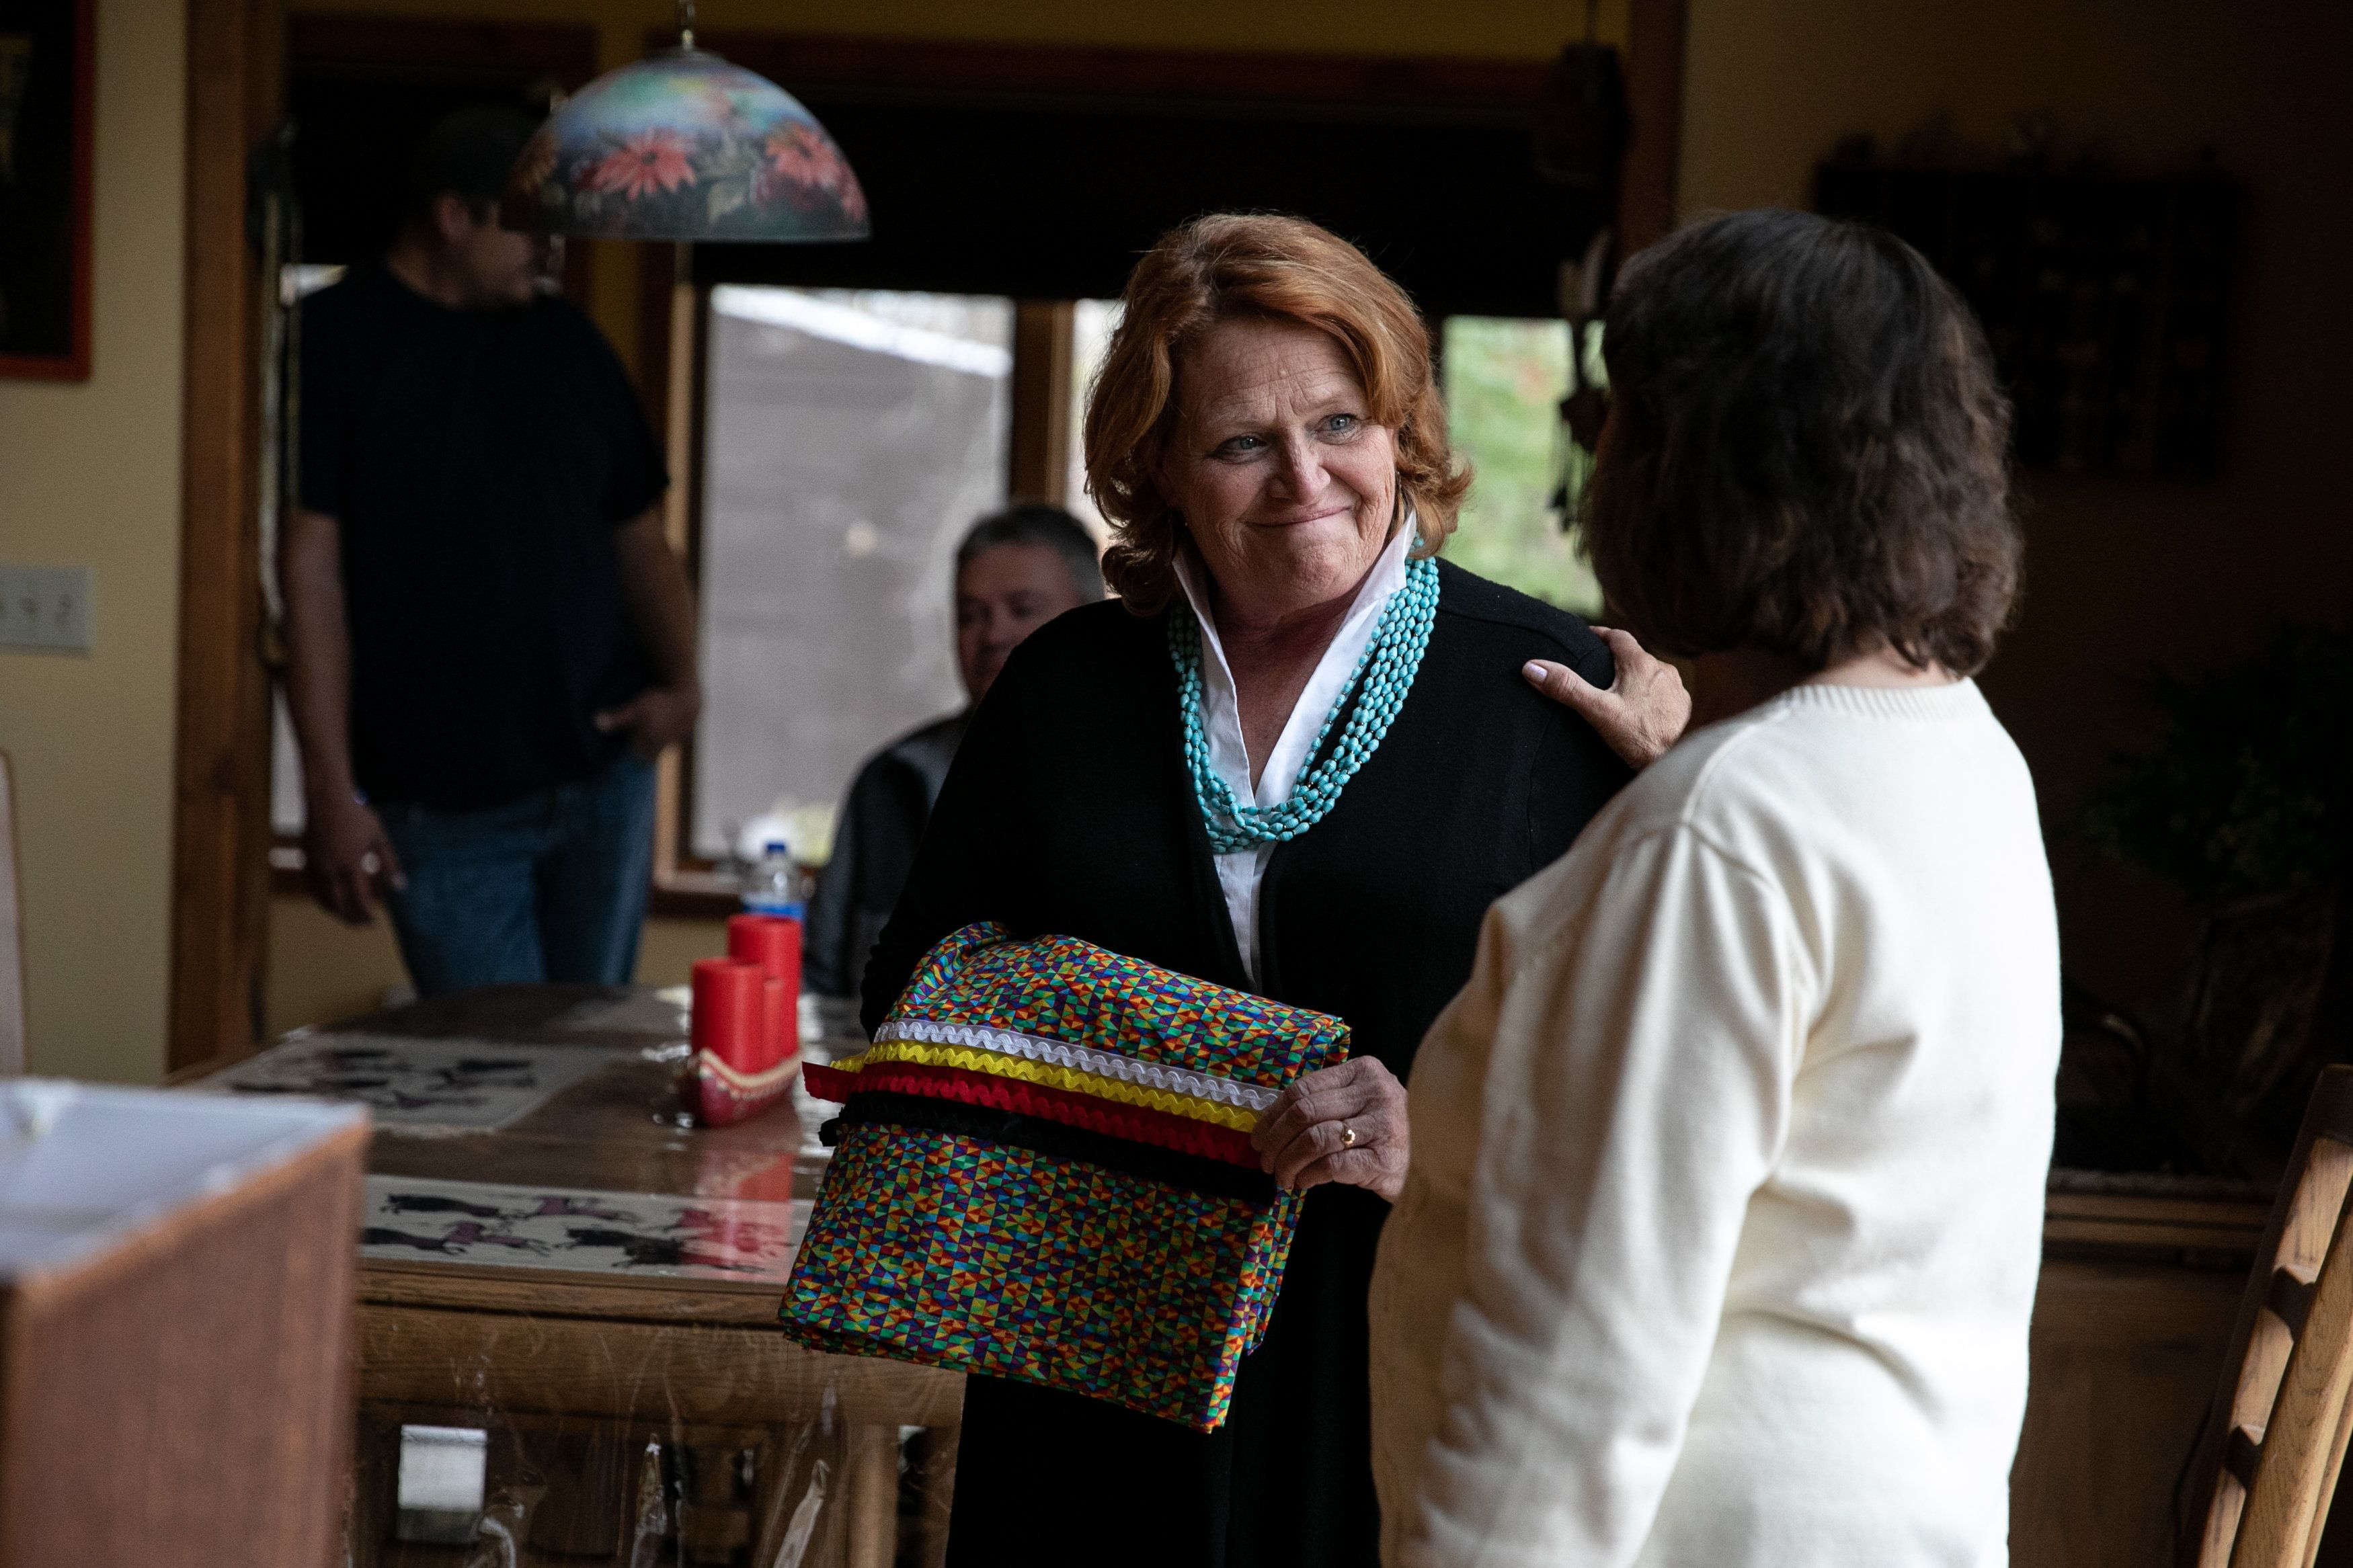 BELCOURT, NORTH DAKOTA - October 8, 2018: Senator Heitkamp was presented with a ribbon skirt at the home of Twila Martin-Kekahbah, a member of the Turtle Mountain Band of Chippewa. Ilana Panich-Linsman for HuffPost